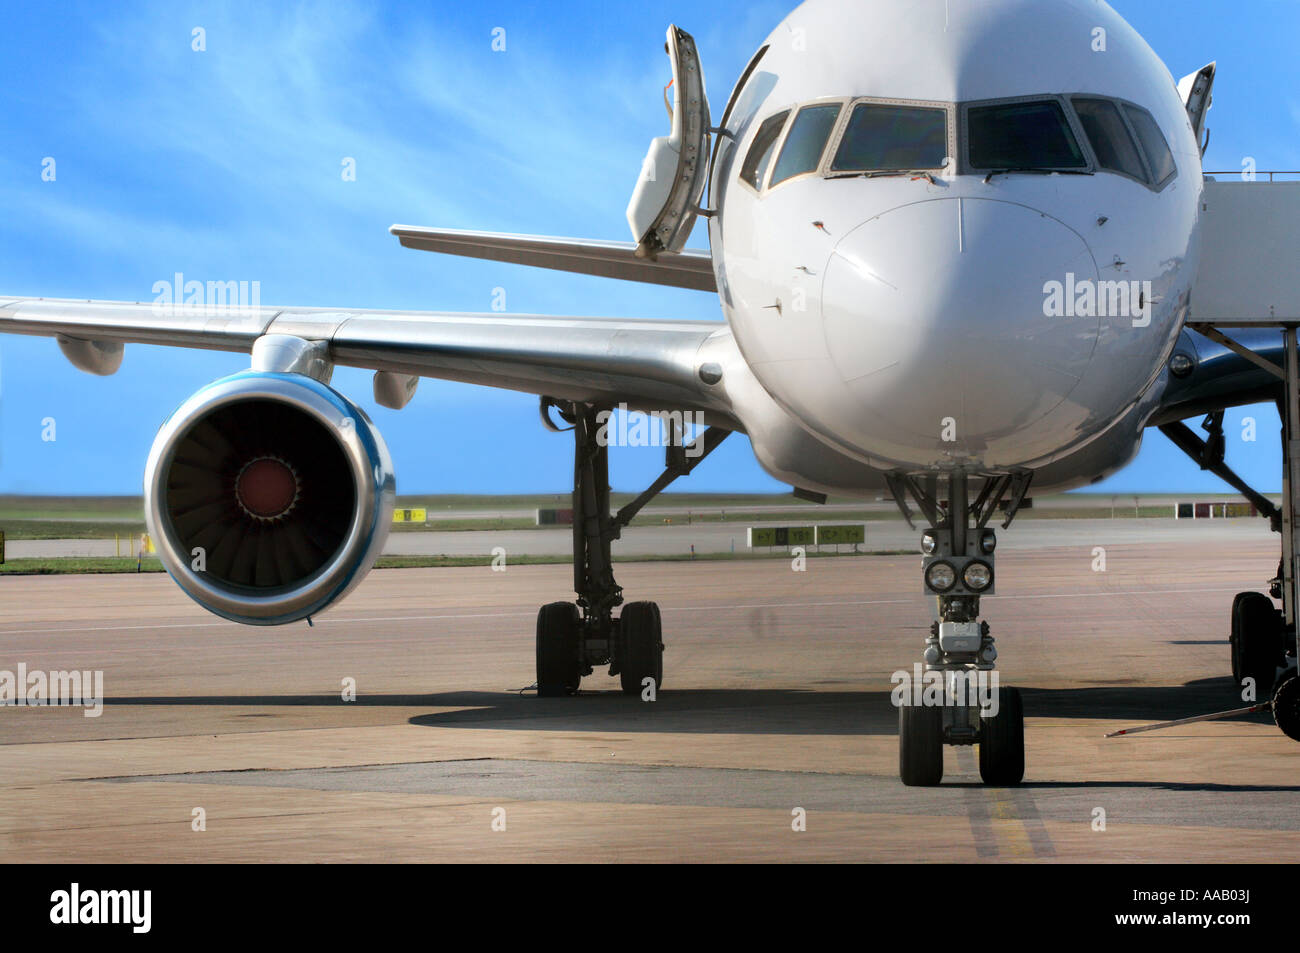 business plane parked at the airport - Stock Image